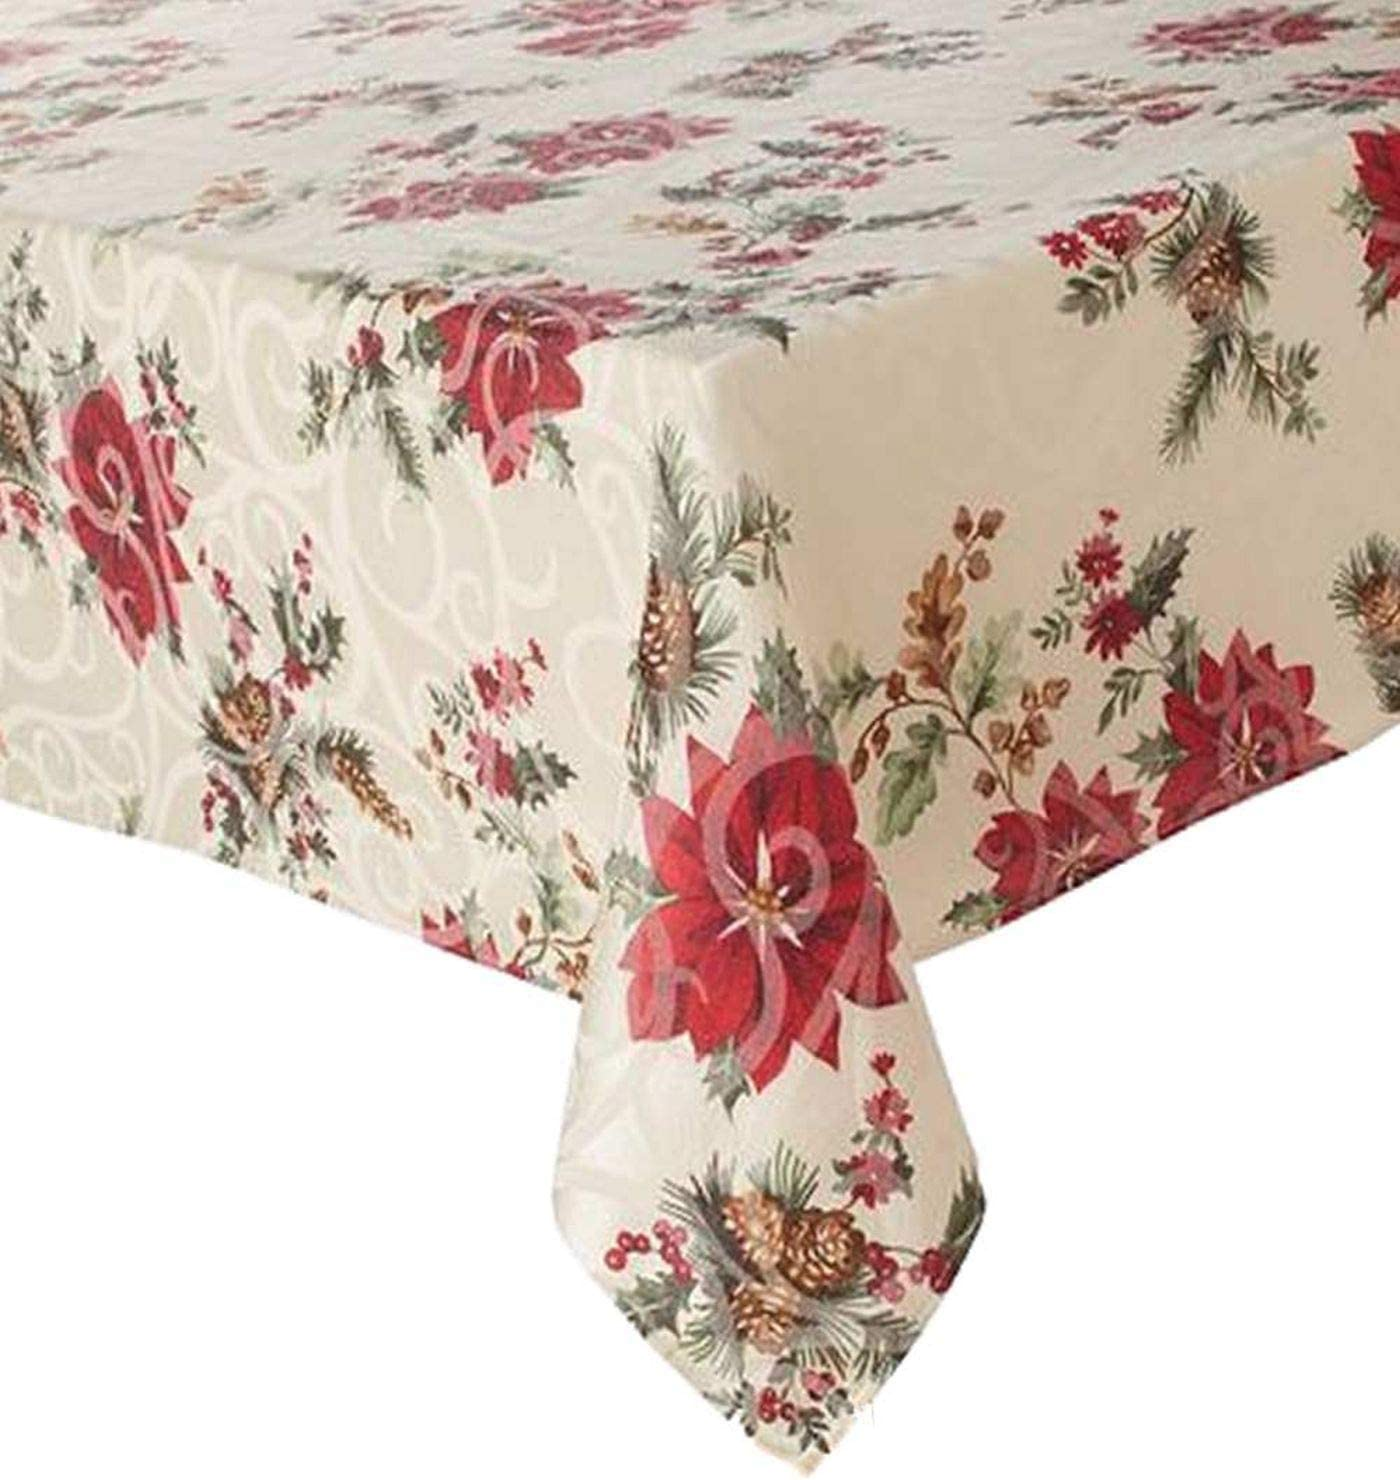 Food Network Juniper Berry Christmas Tablecloth Fabric Table Cloth 70 Round